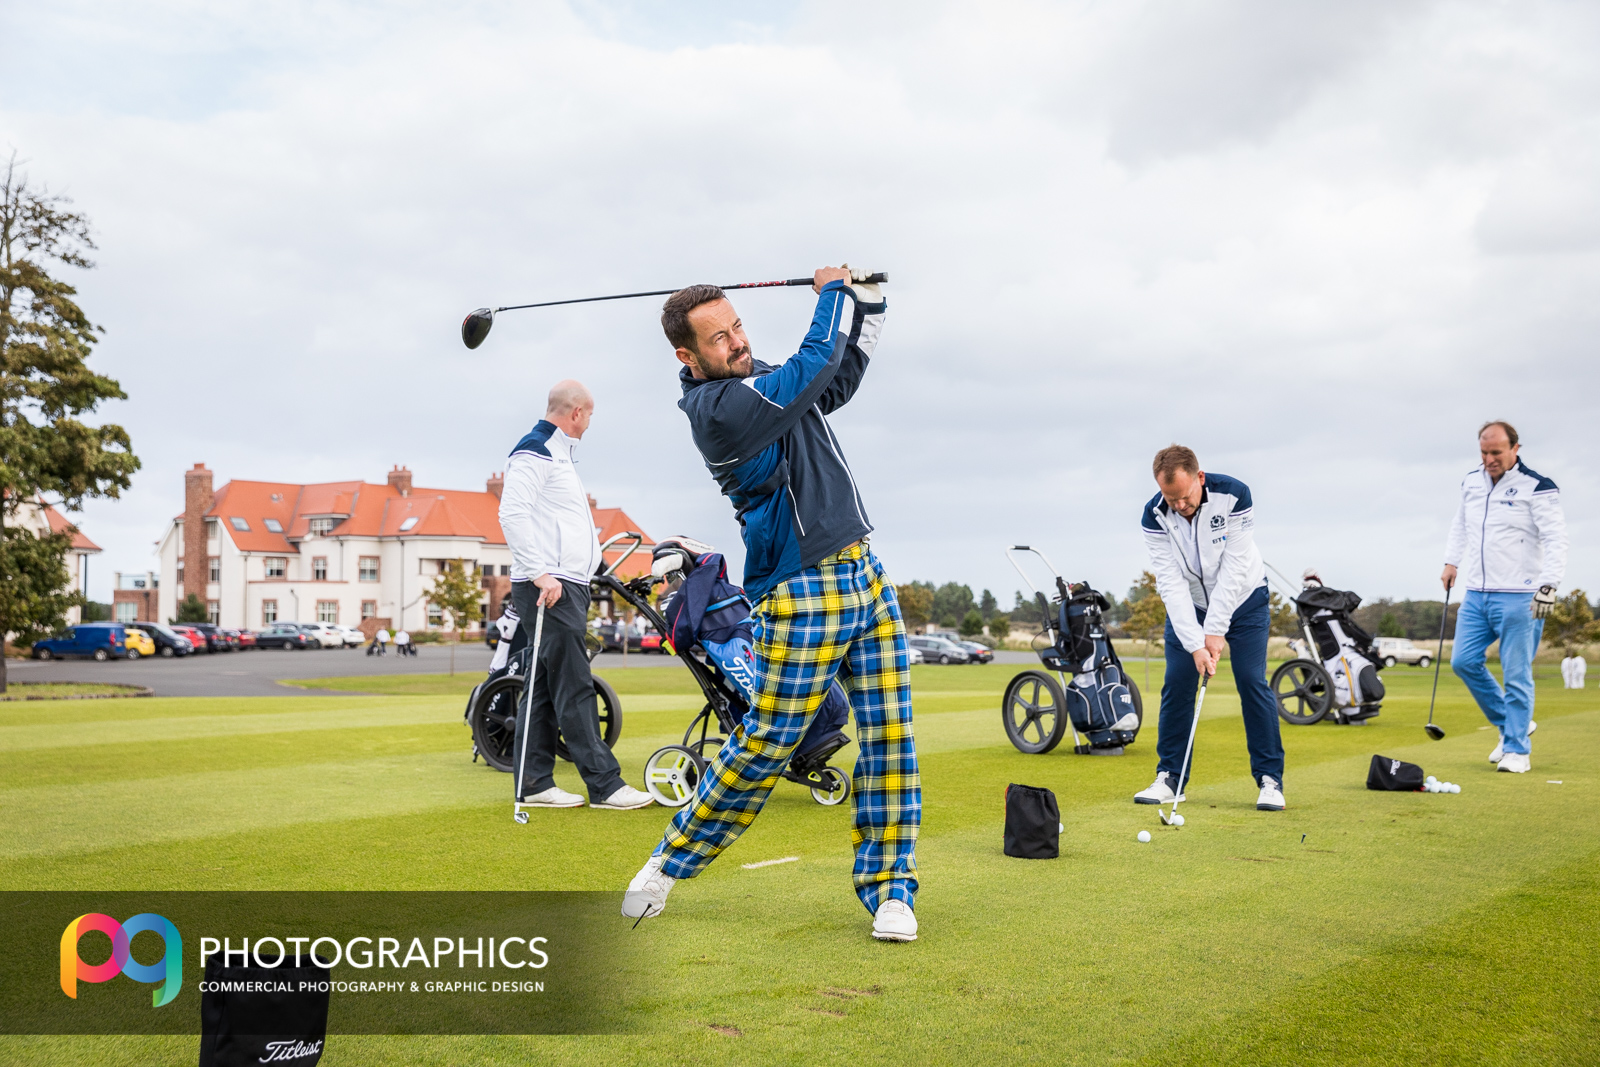 charity-golf-pr-event-photography-glasgow-edinburgh-scotland-8.jpg